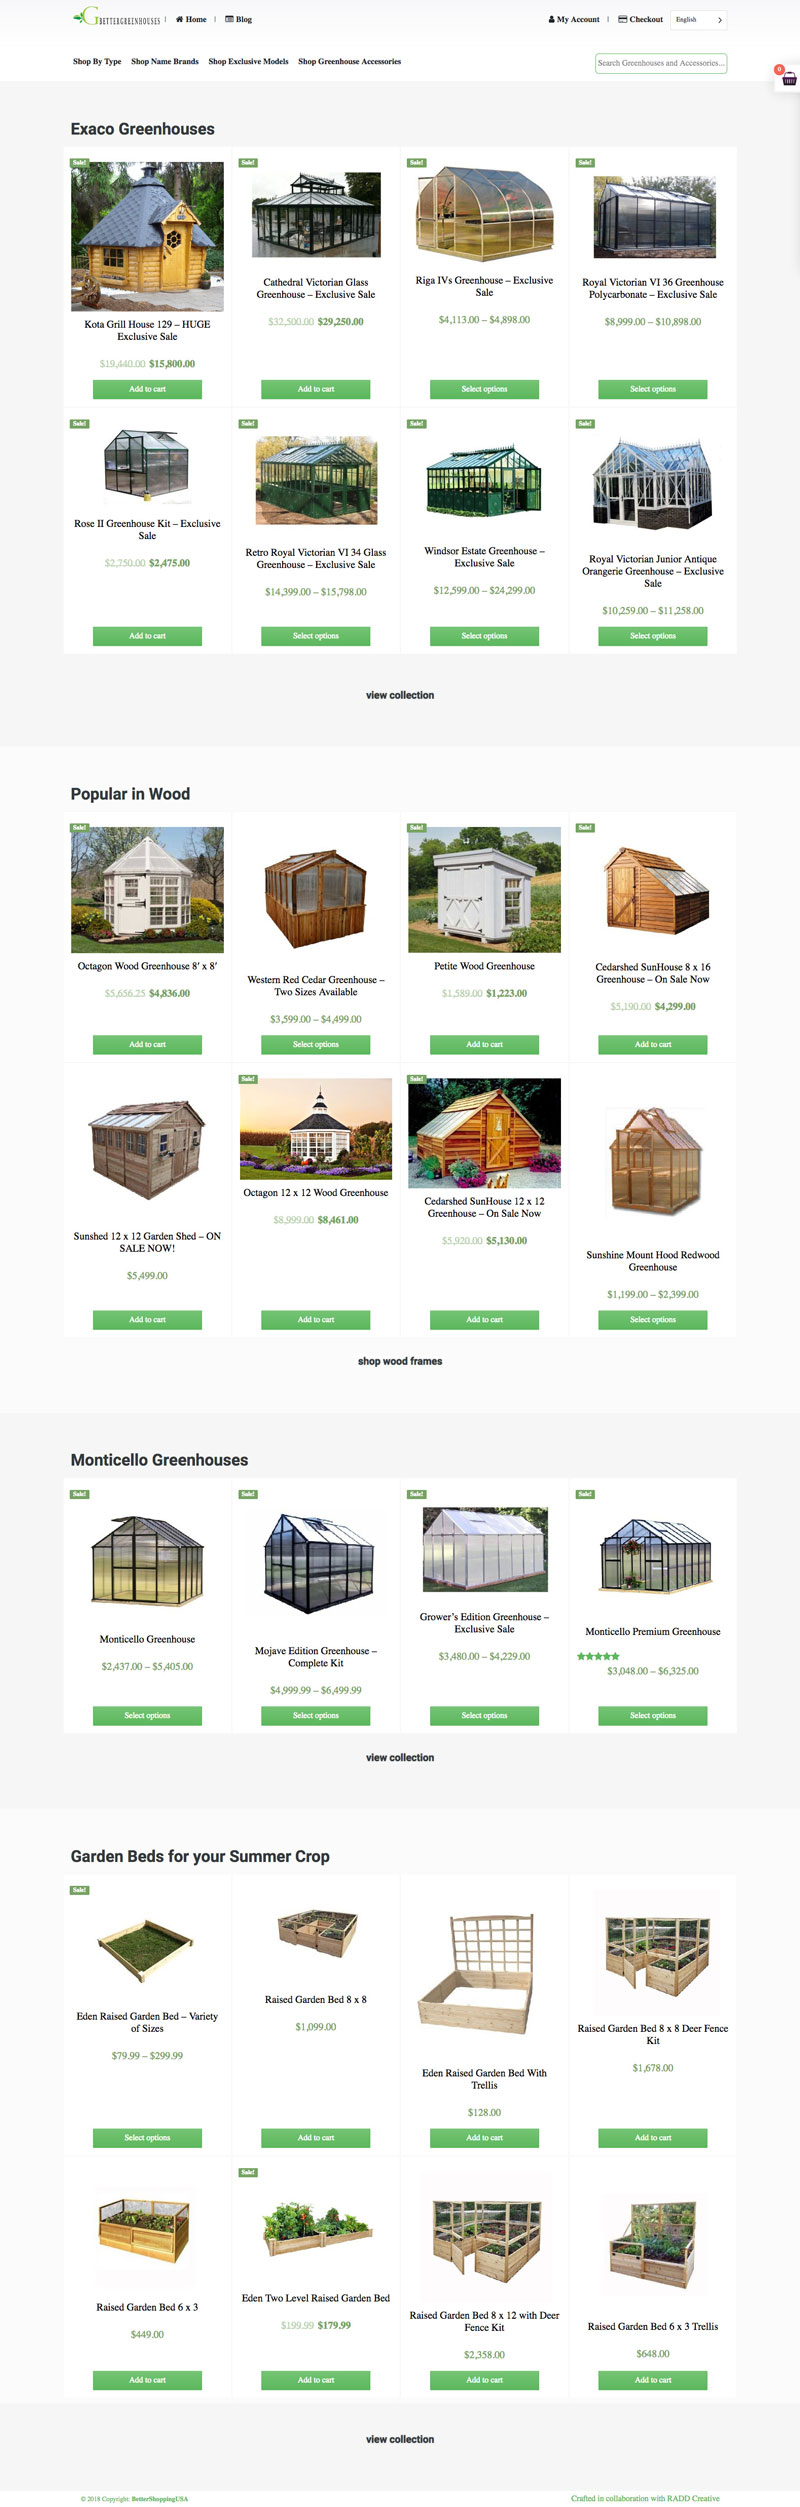 BetterGreenHouses.com's screenshot